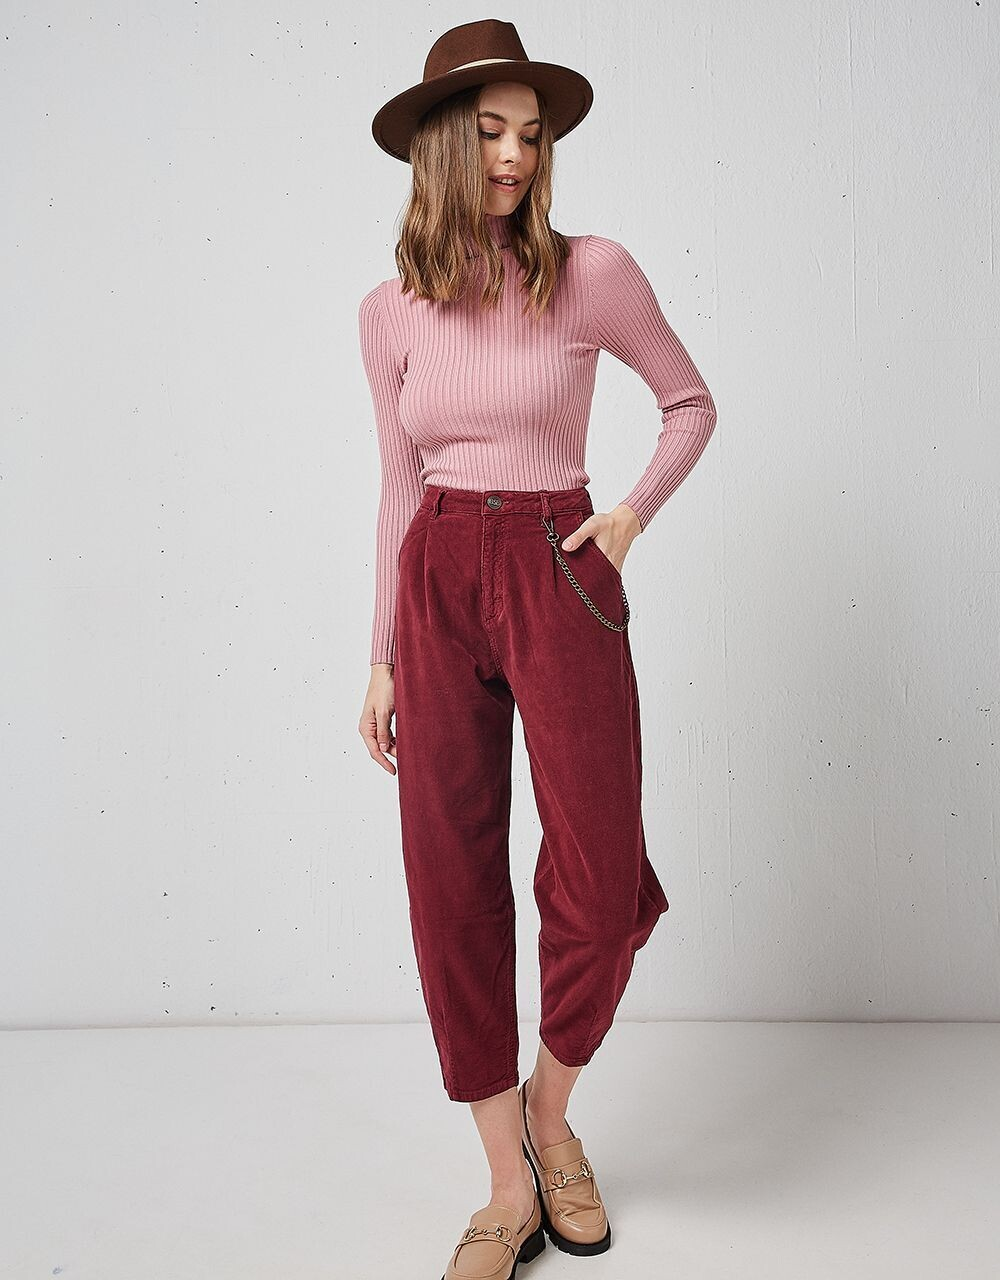 Pantalone cropped in velluto